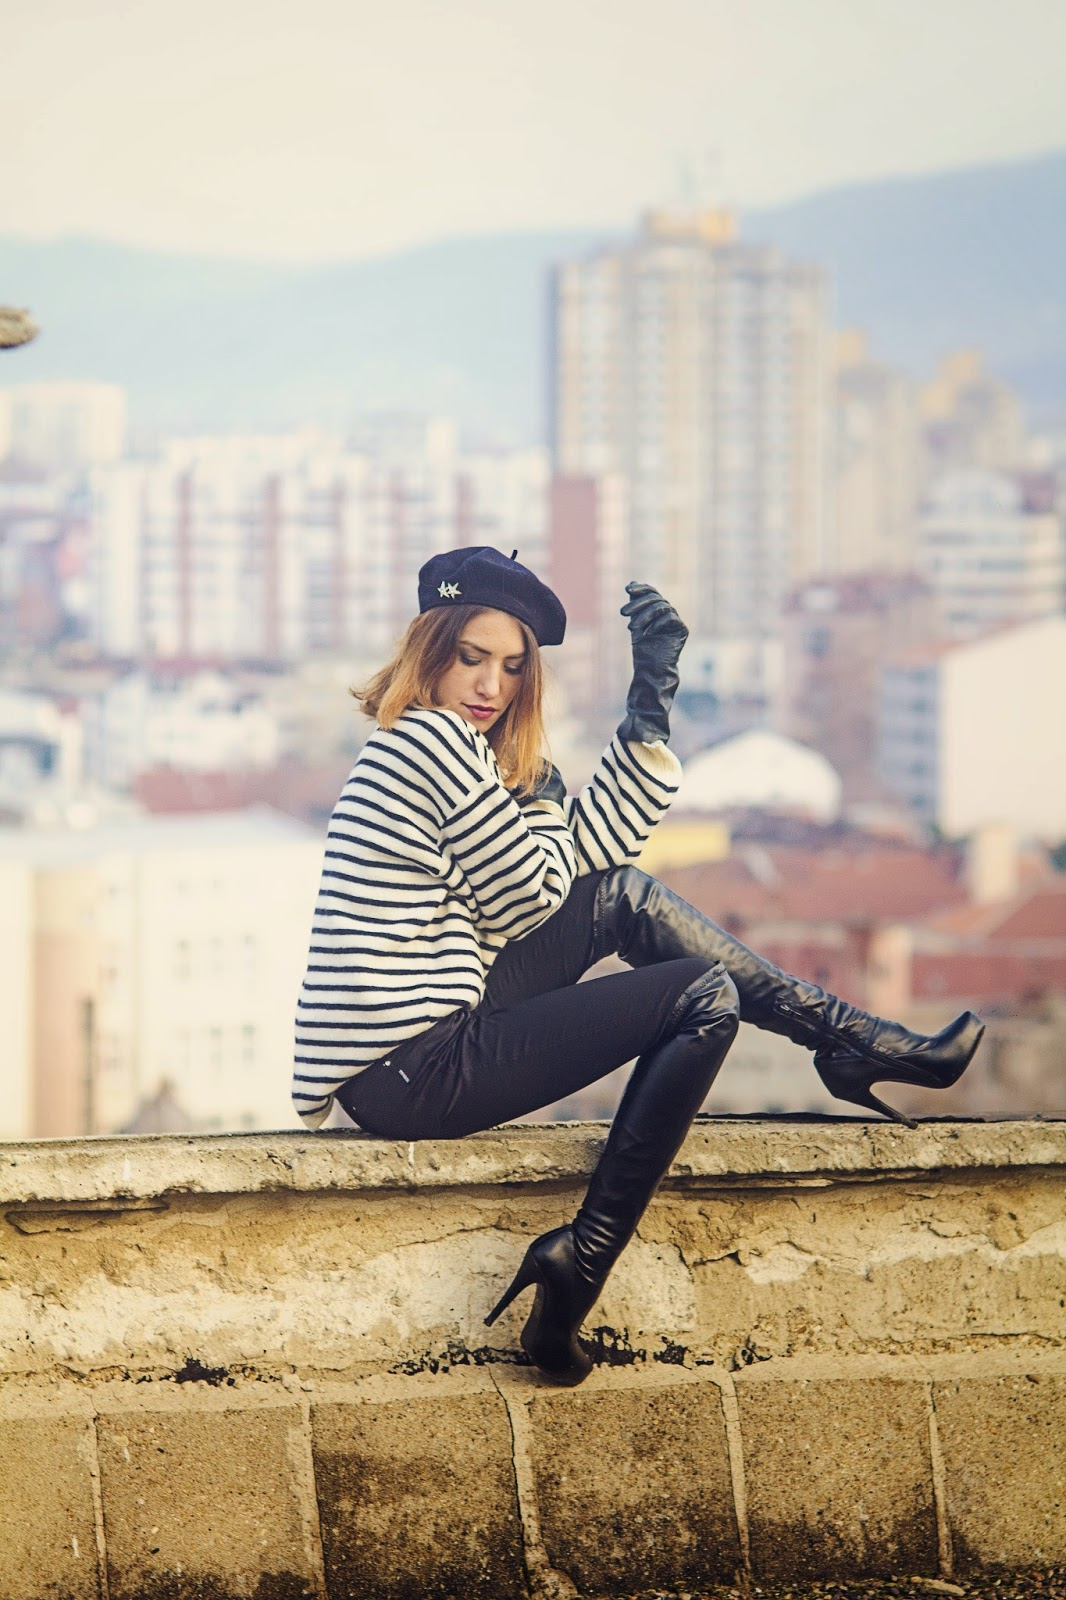 1418803046461_french style by teodora.jpg